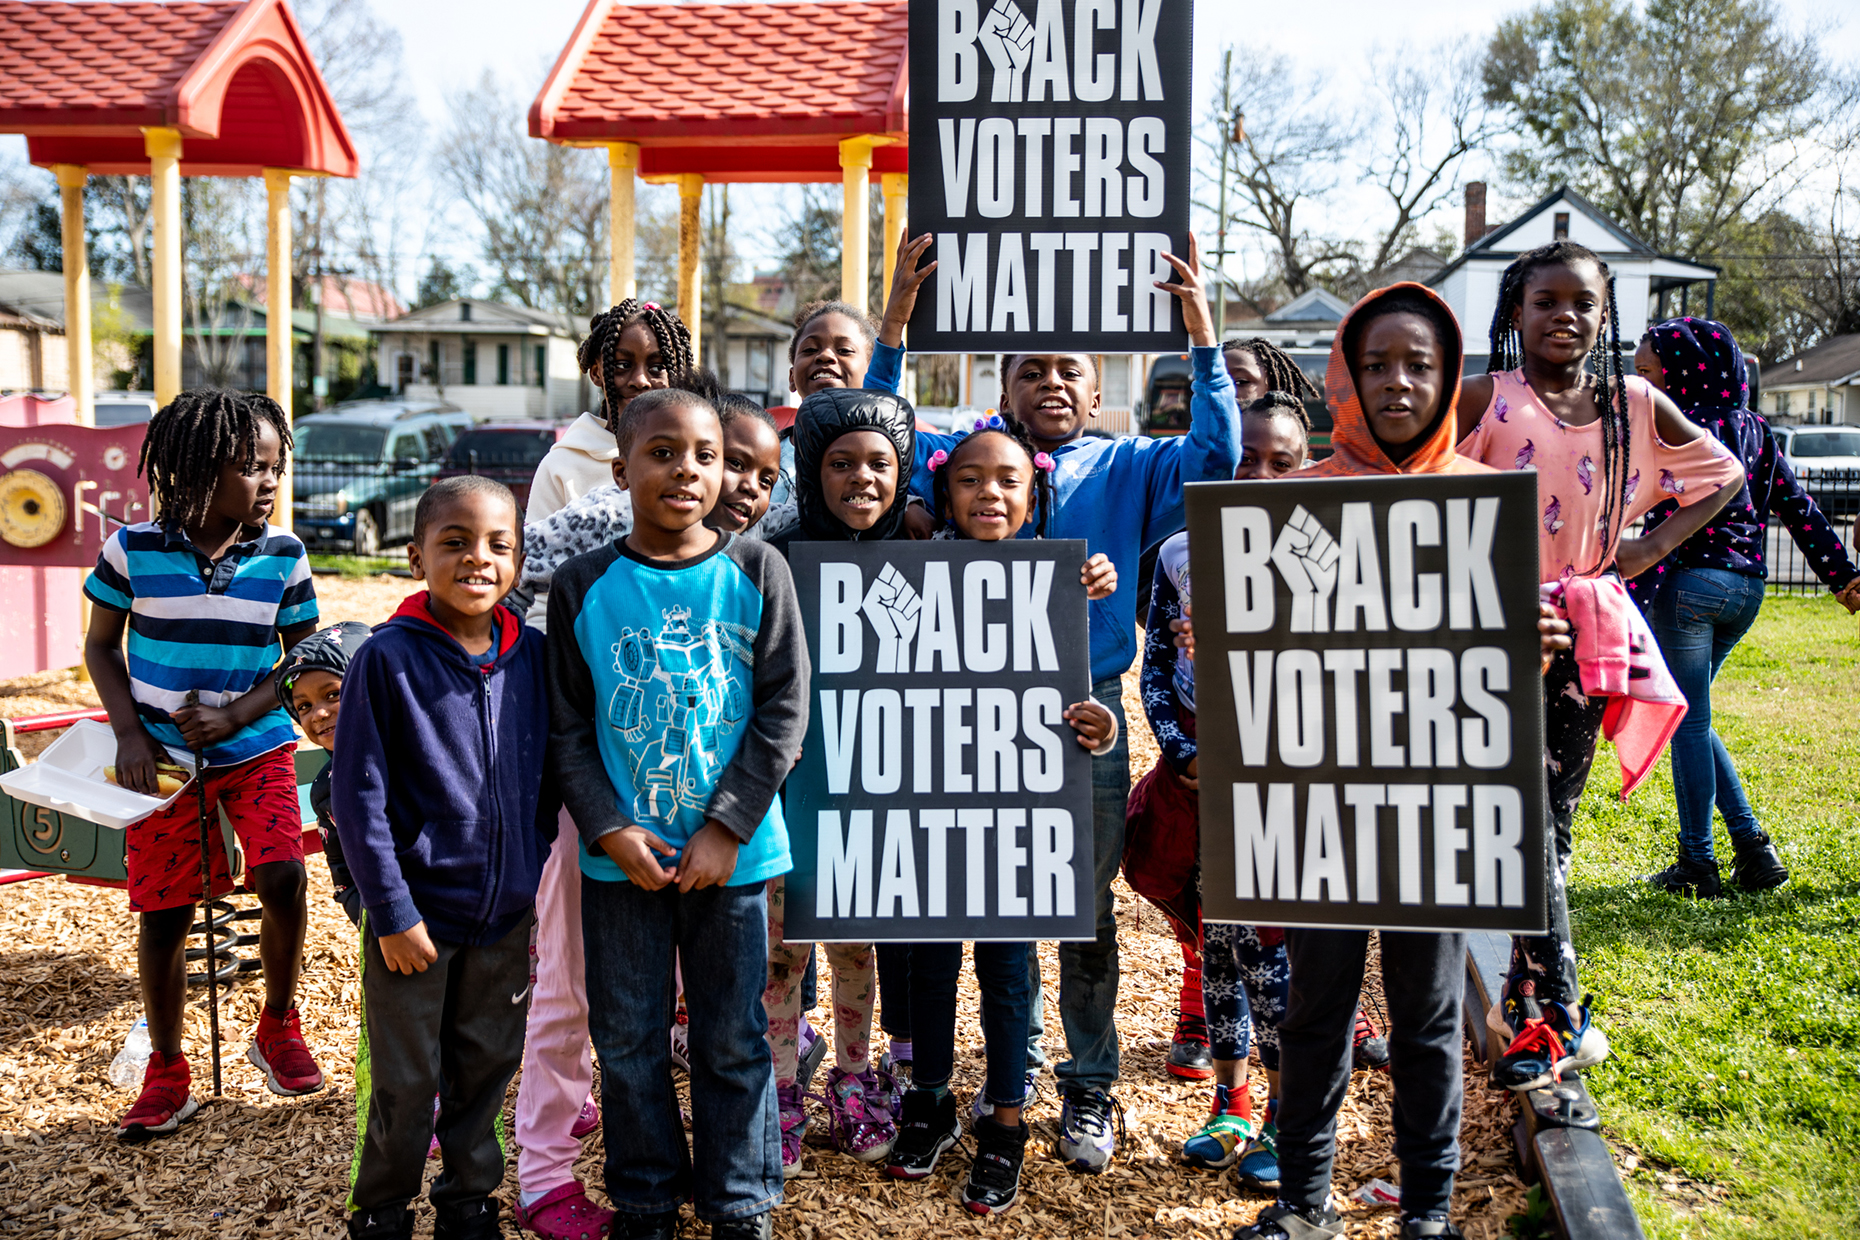 Black kids in a playground holding signs that say 'Black voters matter'.